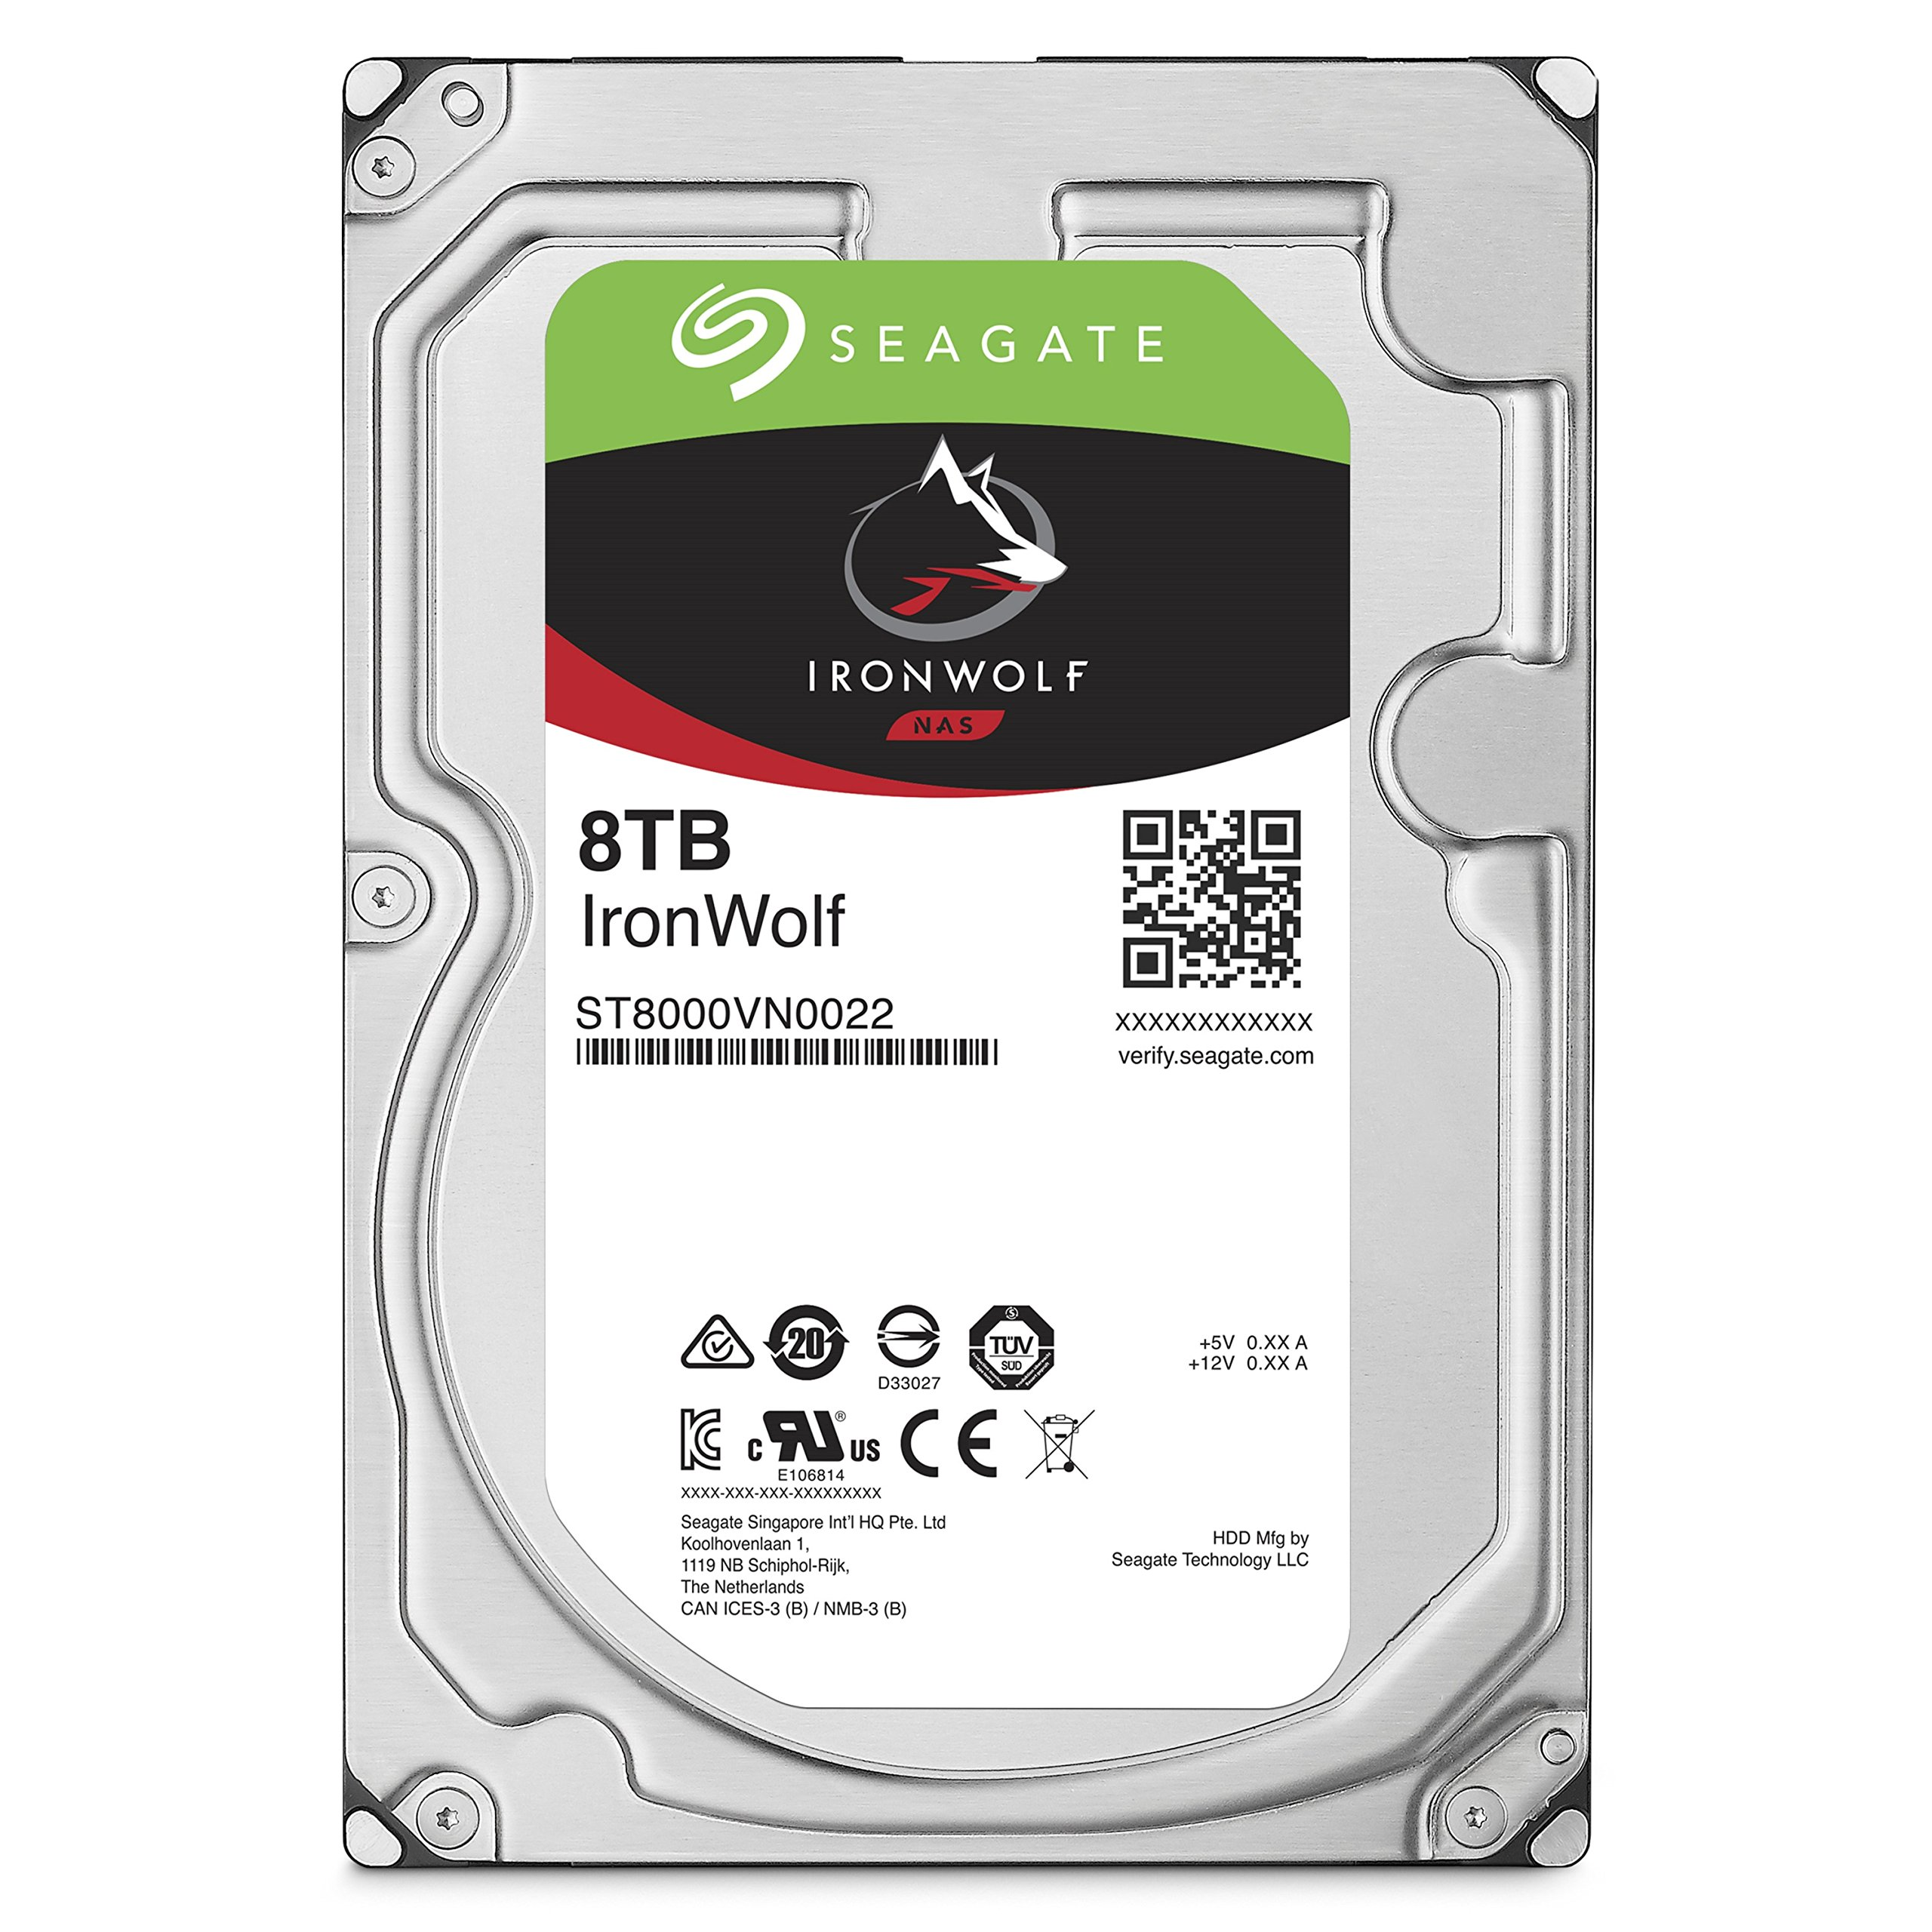 Seagate 8TB IronWolf NAS SATA 6Gb/s NCQ 256MB Cache 3.5-Inch Internal Hard Drive (ST8000VN0022) by Seagate